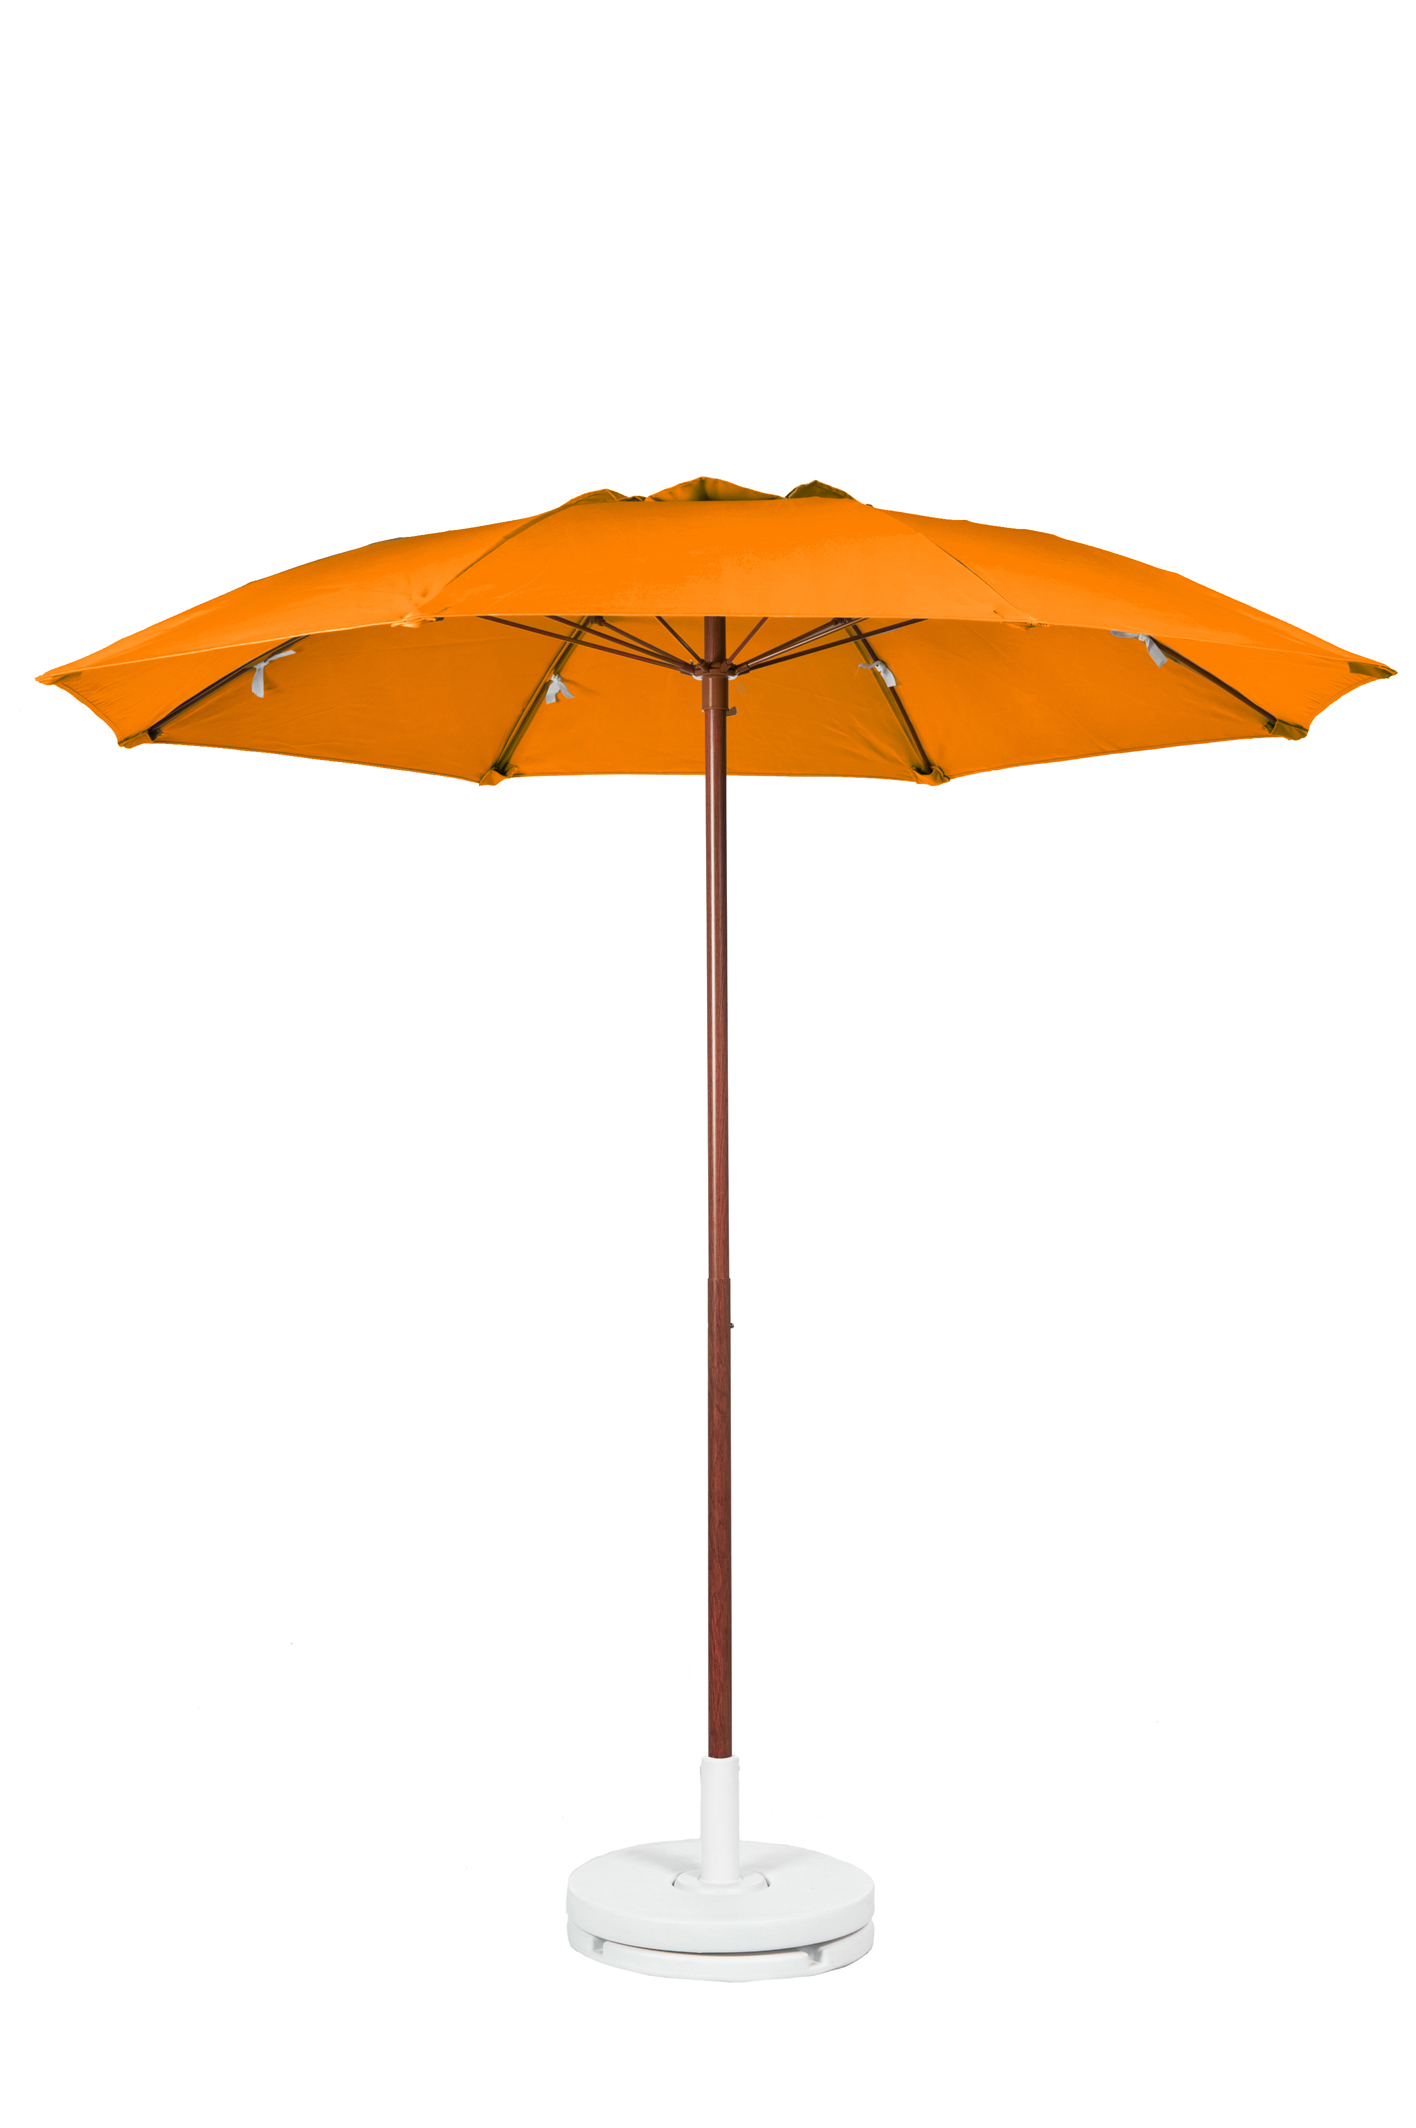 steel skeleton patio umbrellas commercial outdoor furniture at guaranteed lowest prices resort contract furnishings